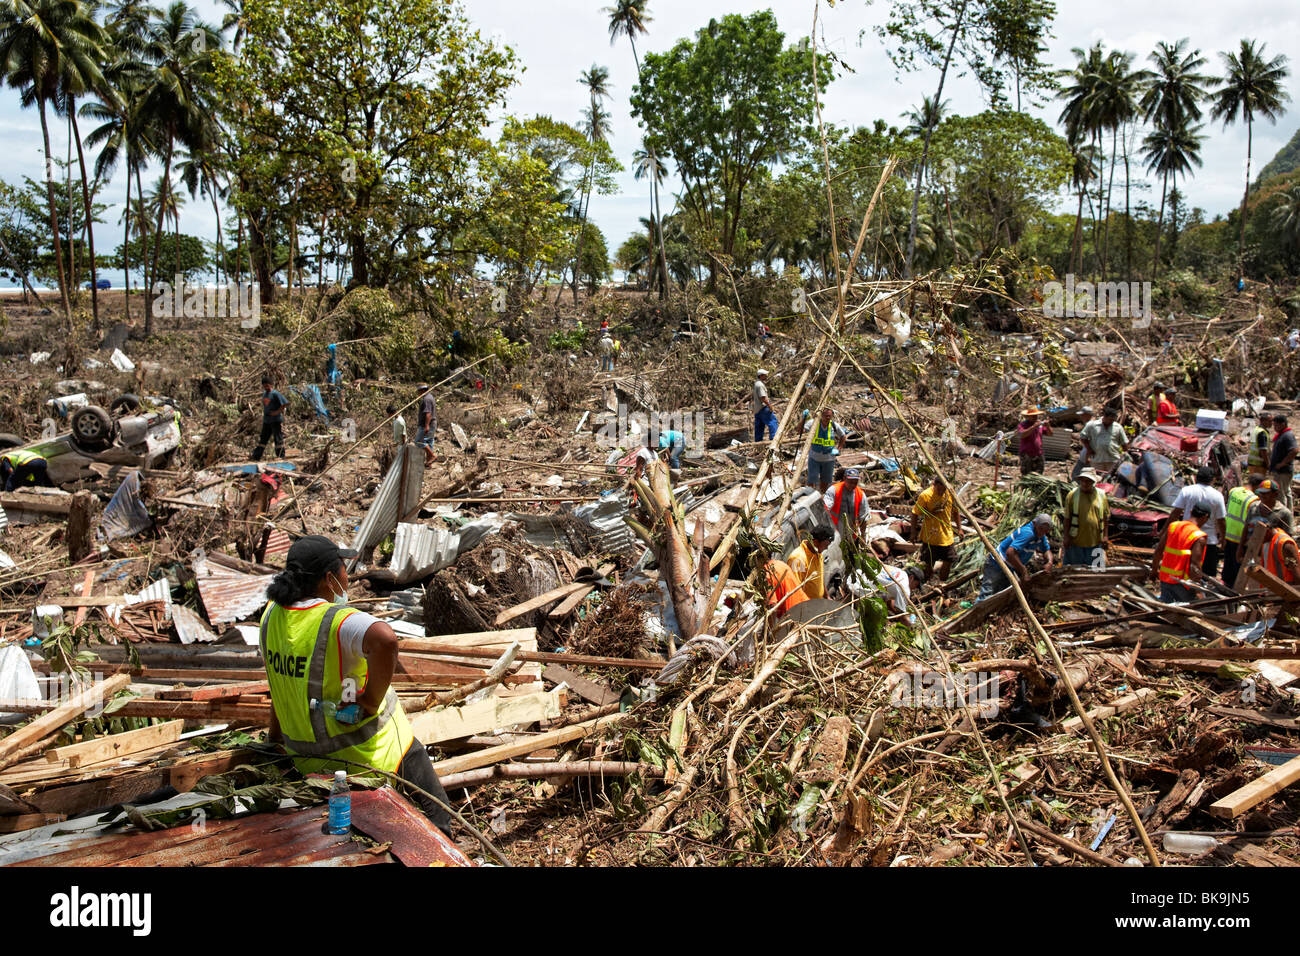 Searching for survivors after 2009 tsunami, Samoa - Stock Image